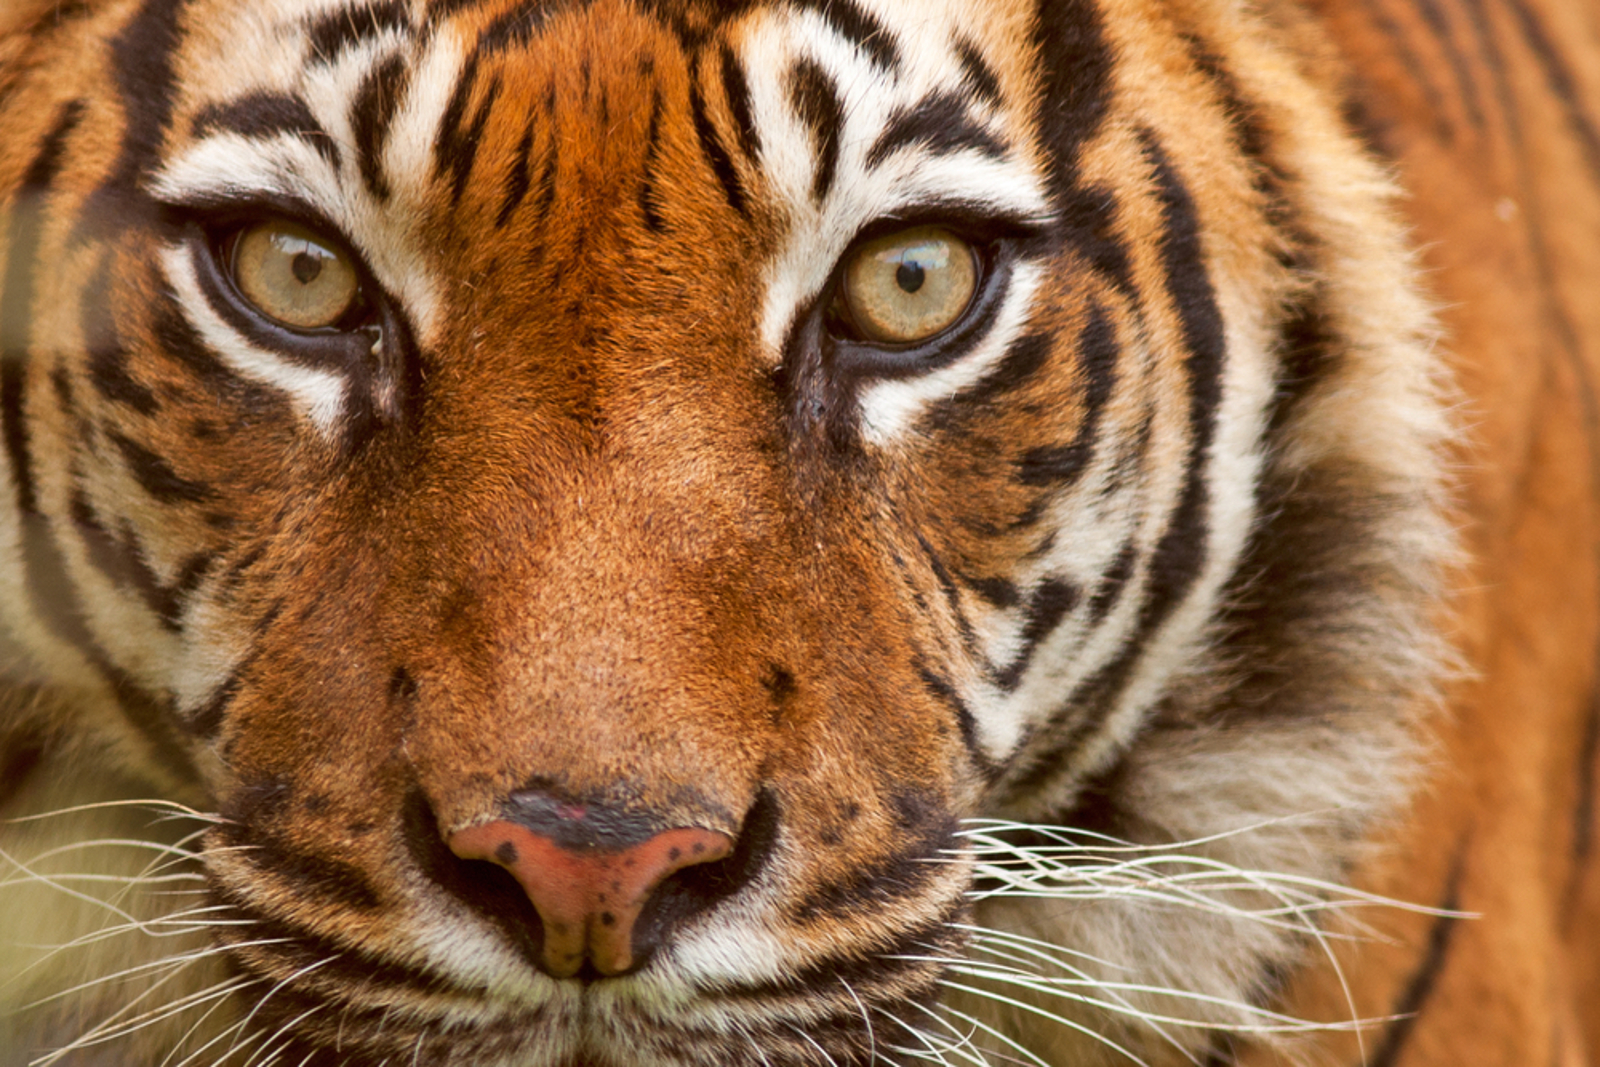 Poachers Are Killing Tigers to Sell Them for Their Bones. How We're Working to Stop This